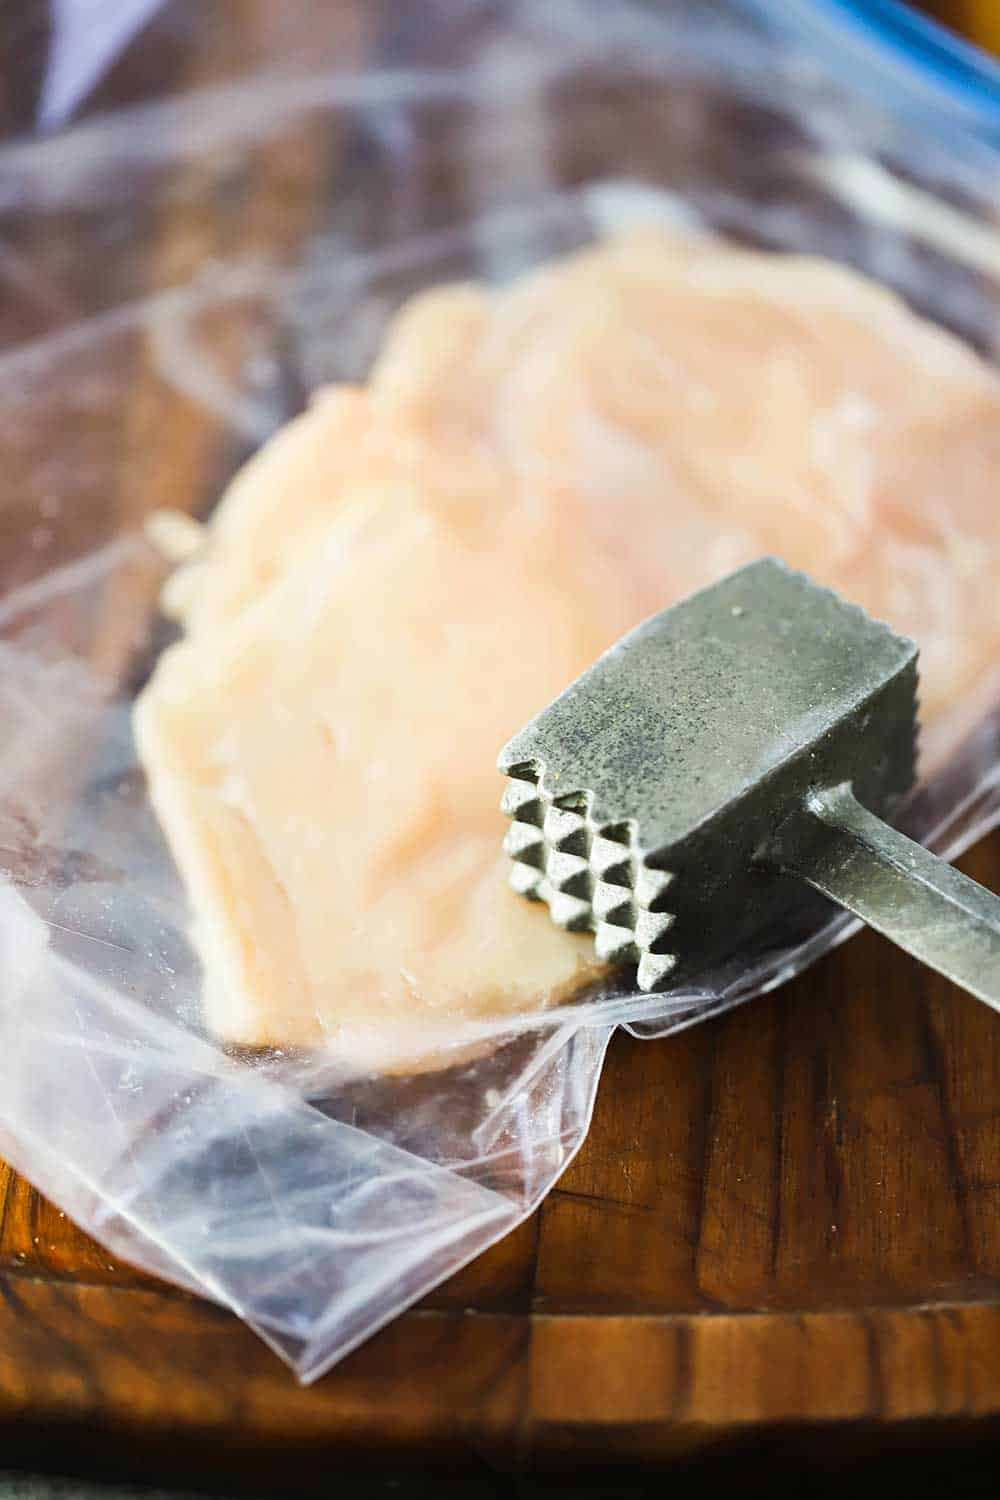 A mallet turned on its side on a chicken breast in plastic freezer baggie.